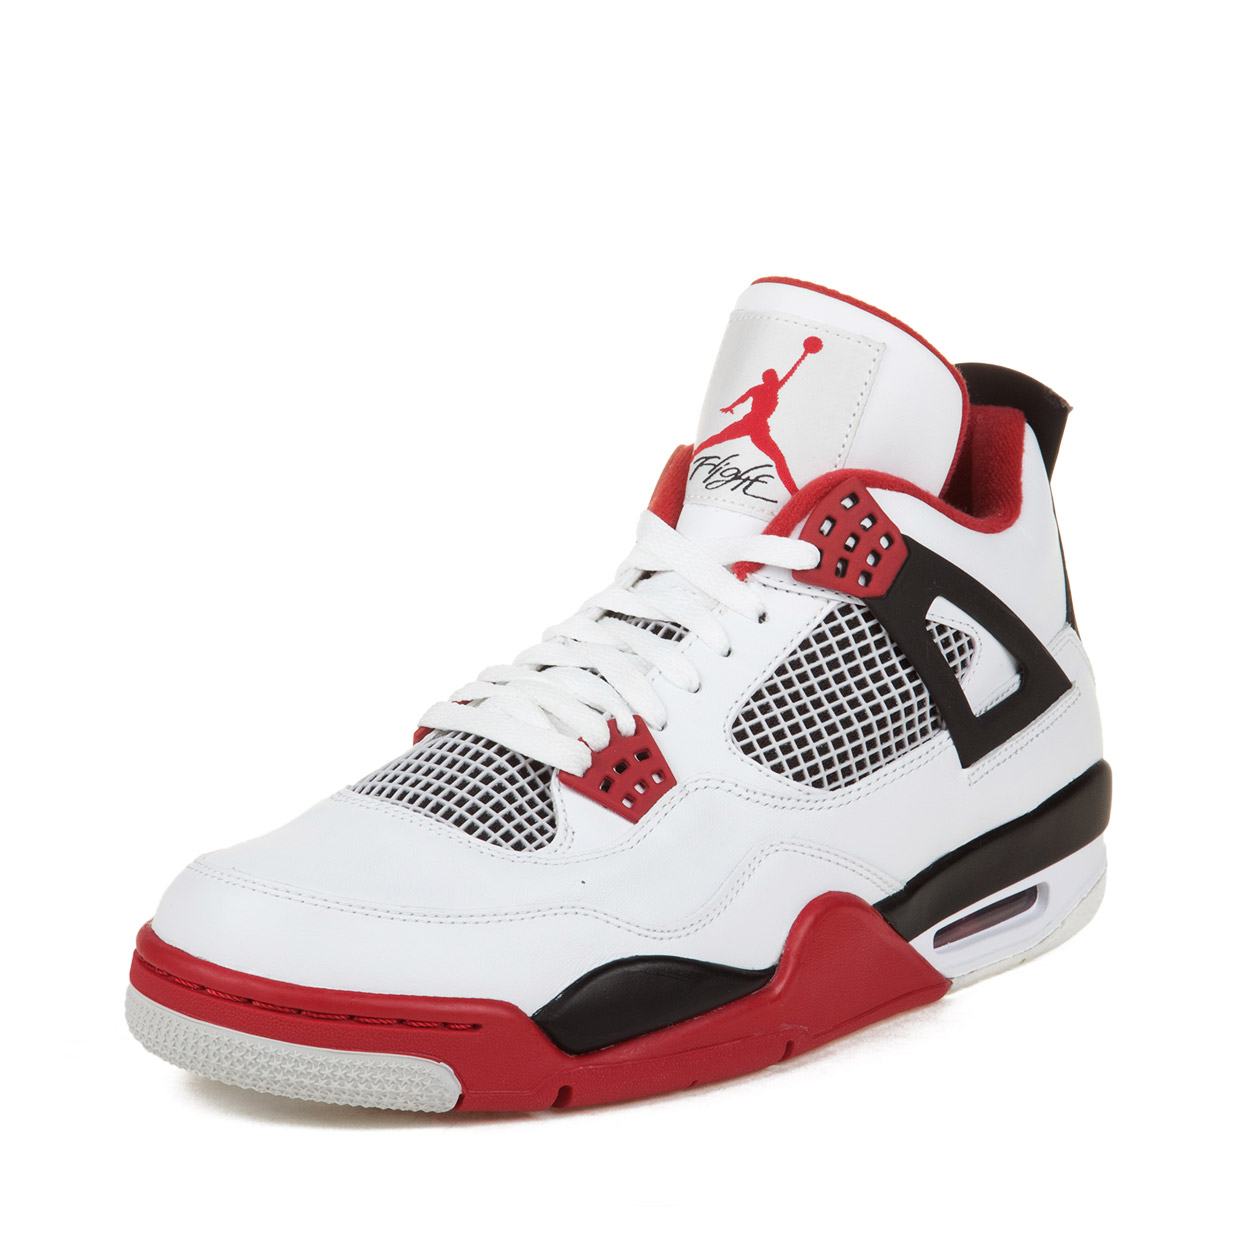 nike air jordan iv retro red toaster